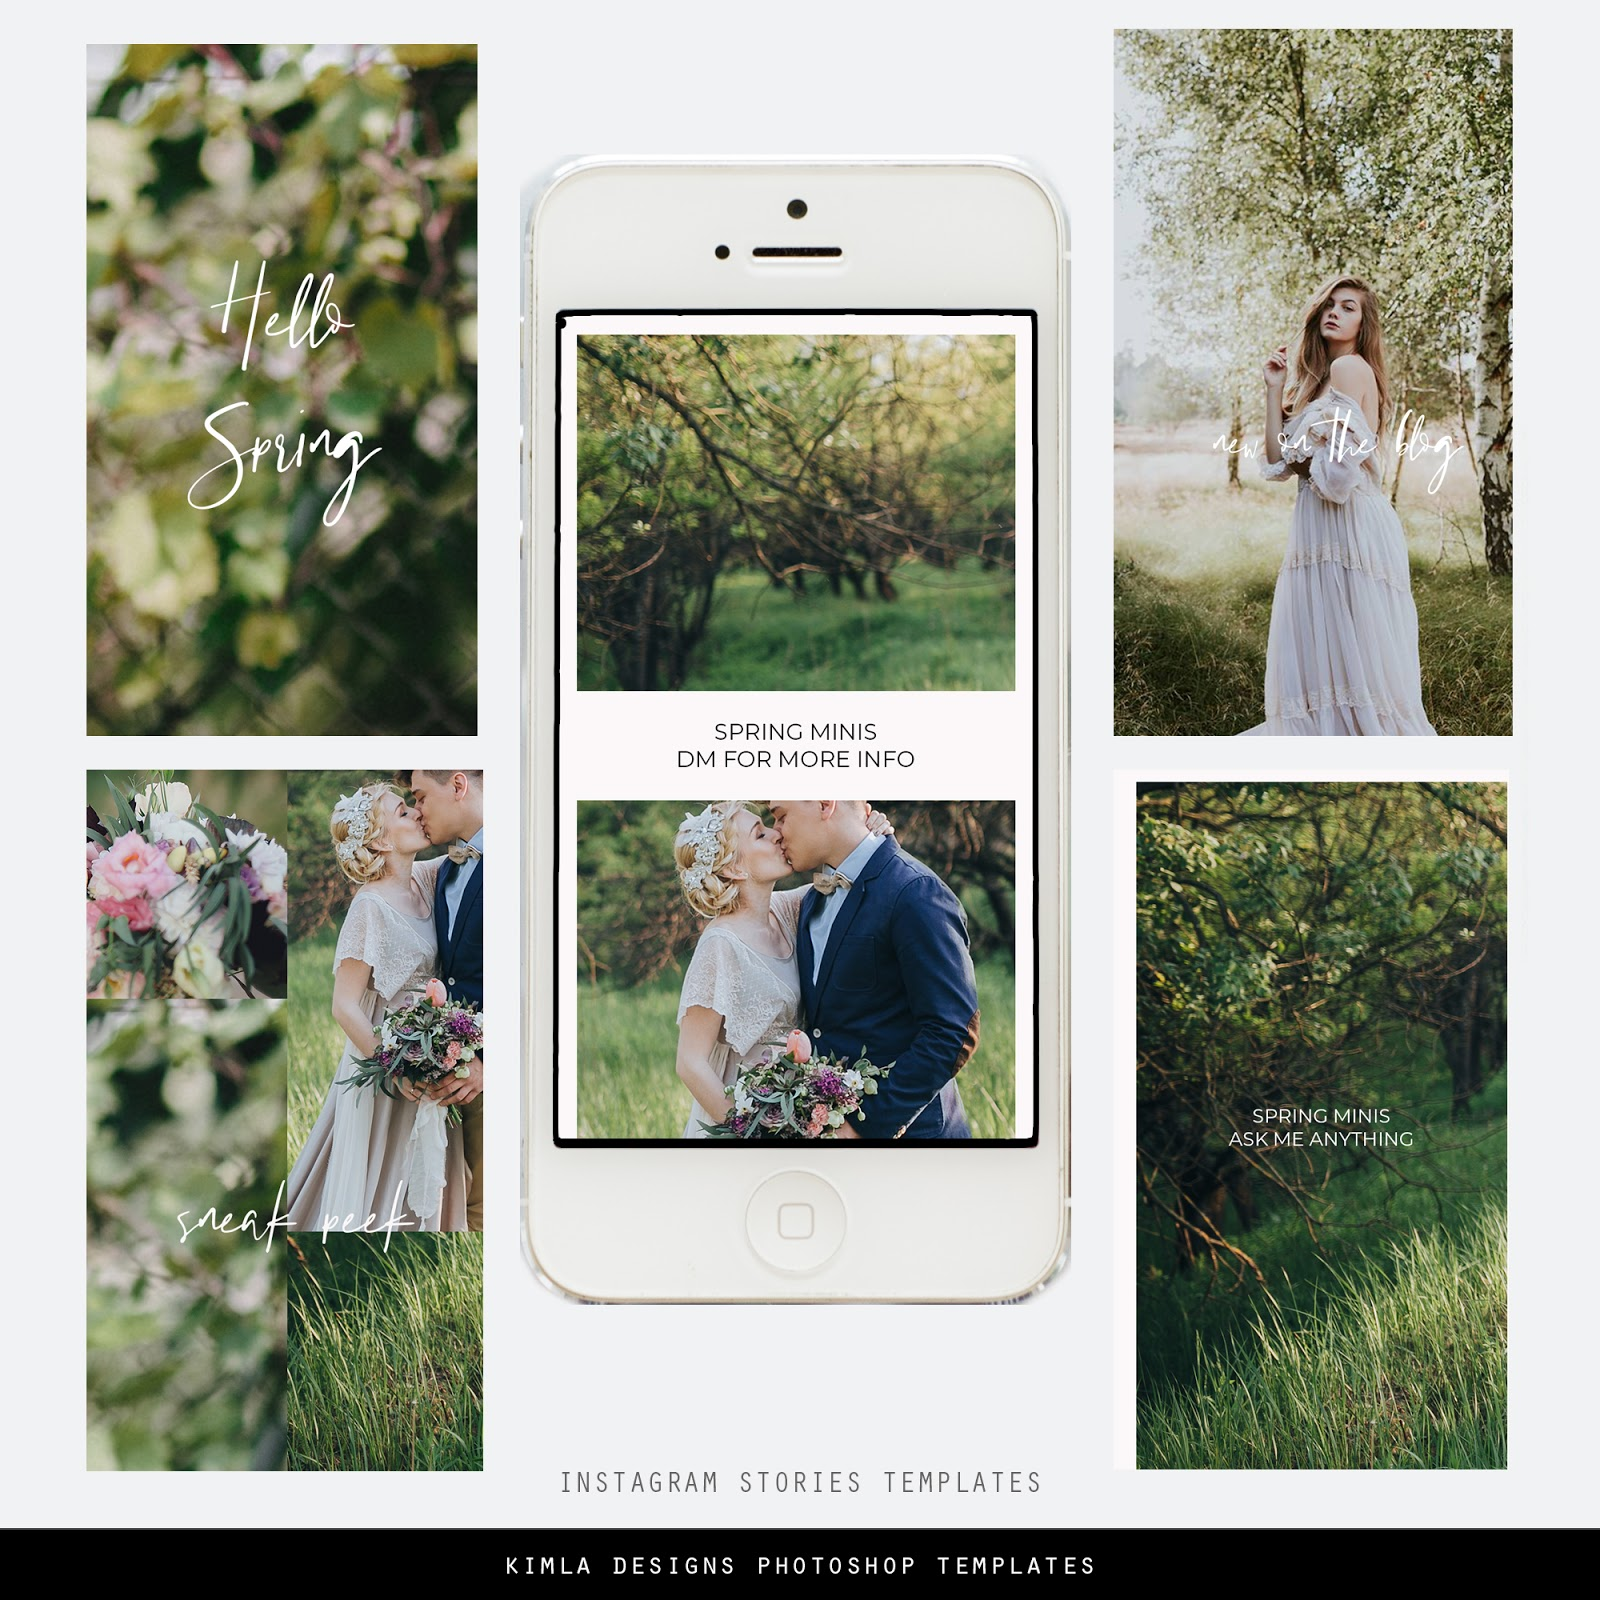 Free Instagram Story Marketing Templates for Photographers